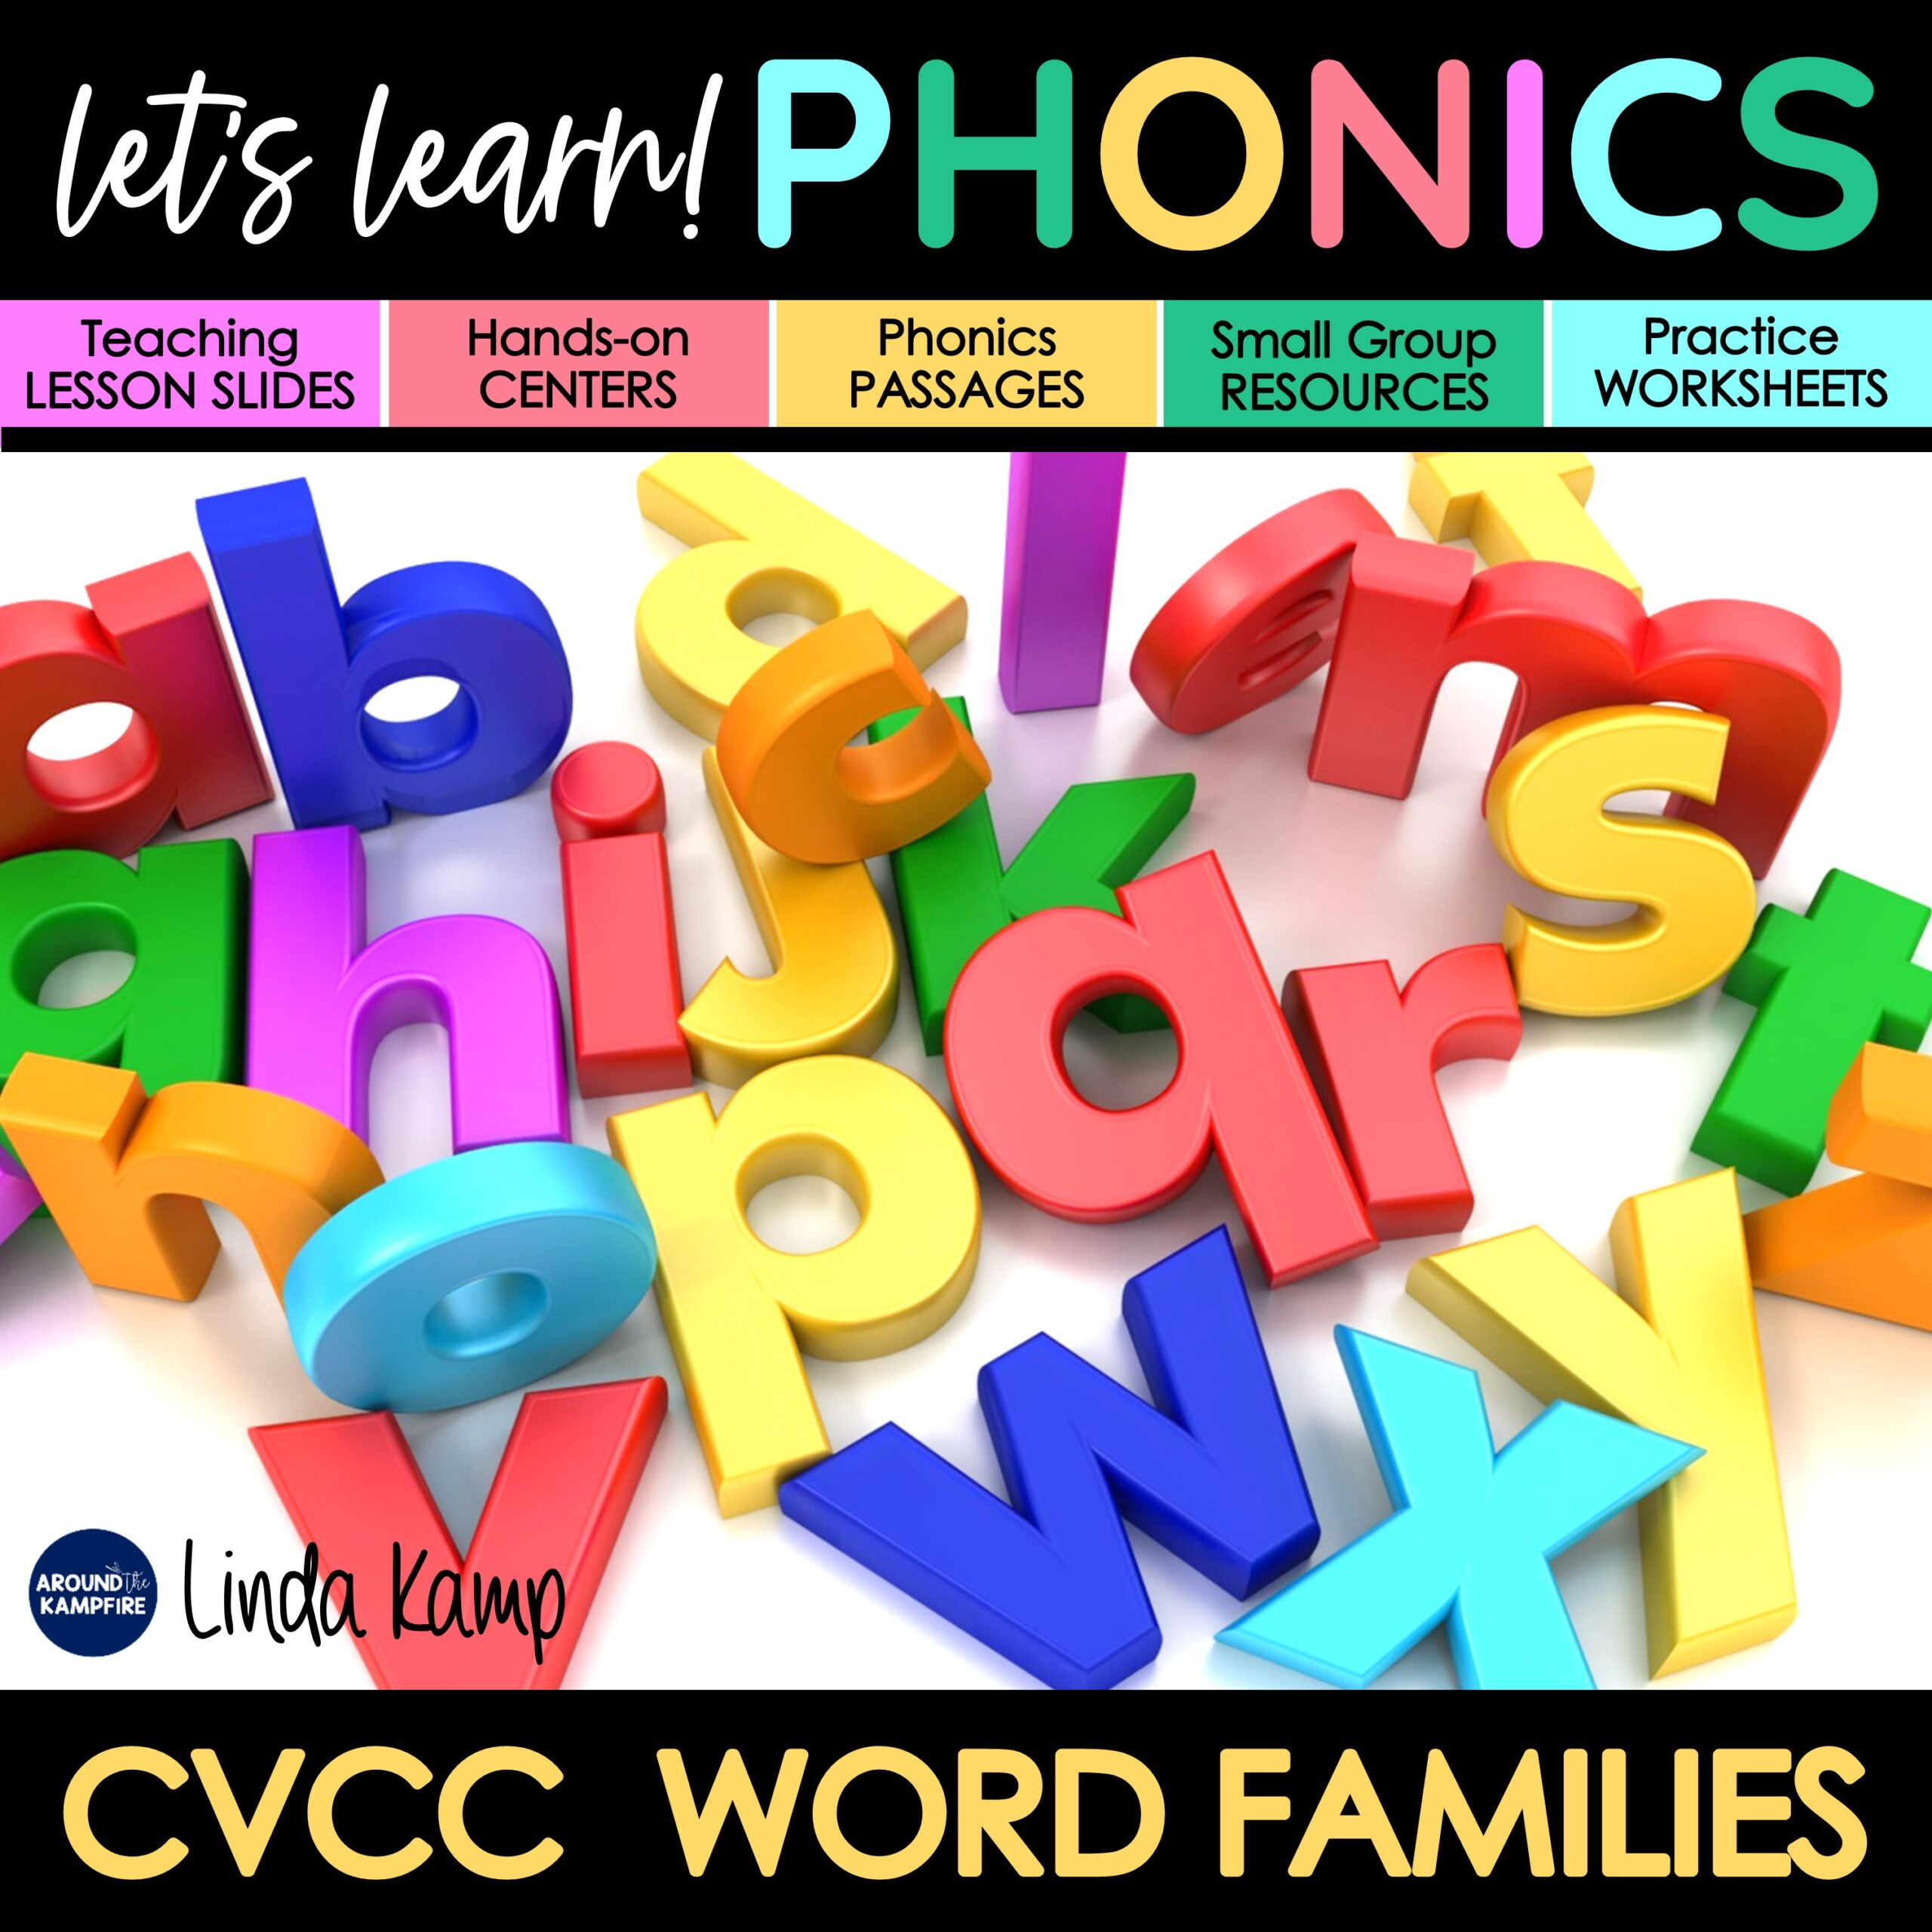 CVCC phonics activities unit cover